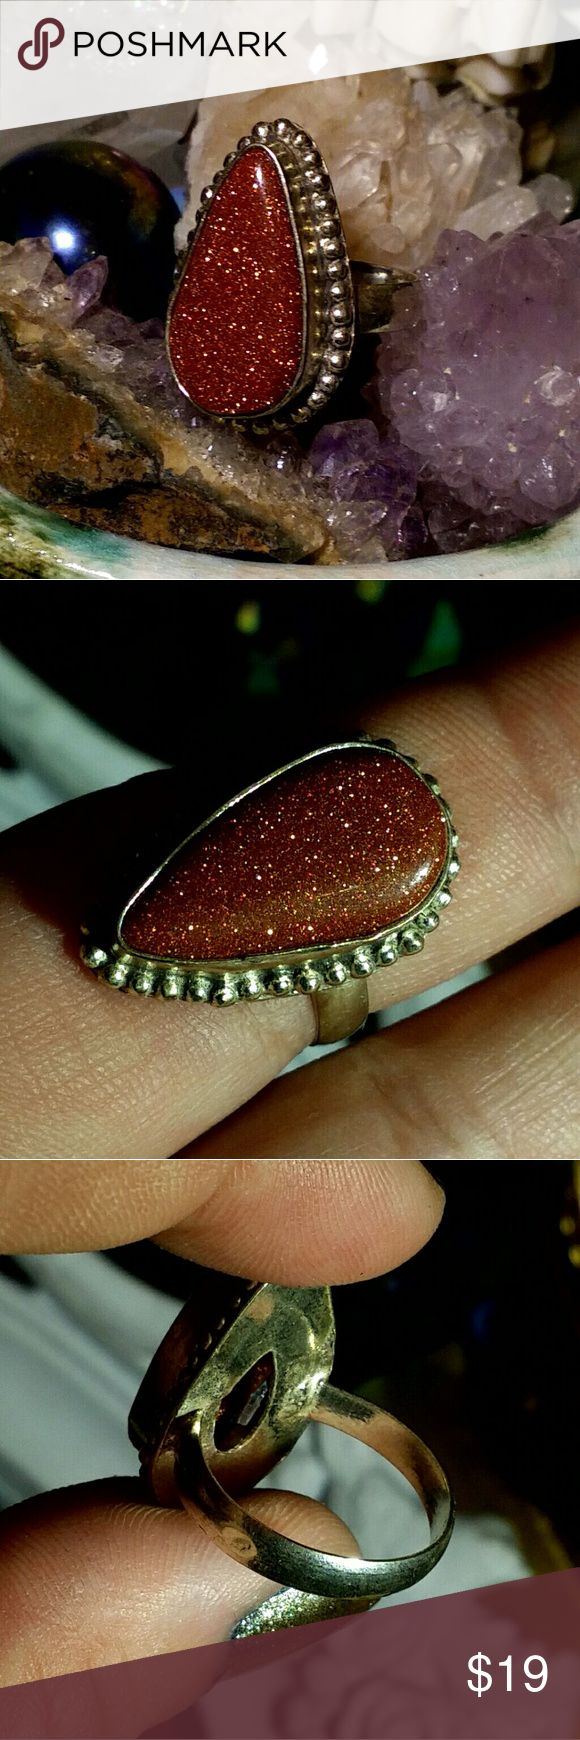 Size 6.5 Goldstone 925 Stamped Ring One of a kind ring featuring a polished goldstone cabochon on a 925 stamped sterling silver plated brass frame. Ring is handmade.  Only one available! Size 6.5  Setting is 0.8 inches long.  Goldstone will boost the glow of one's life force, strengthening the inner self, and chi. With the properties of Copper as well, it is extremely helpful in increasing the strength of circulatory system, which in turn bolsters the bones, easing arthritic pain and…